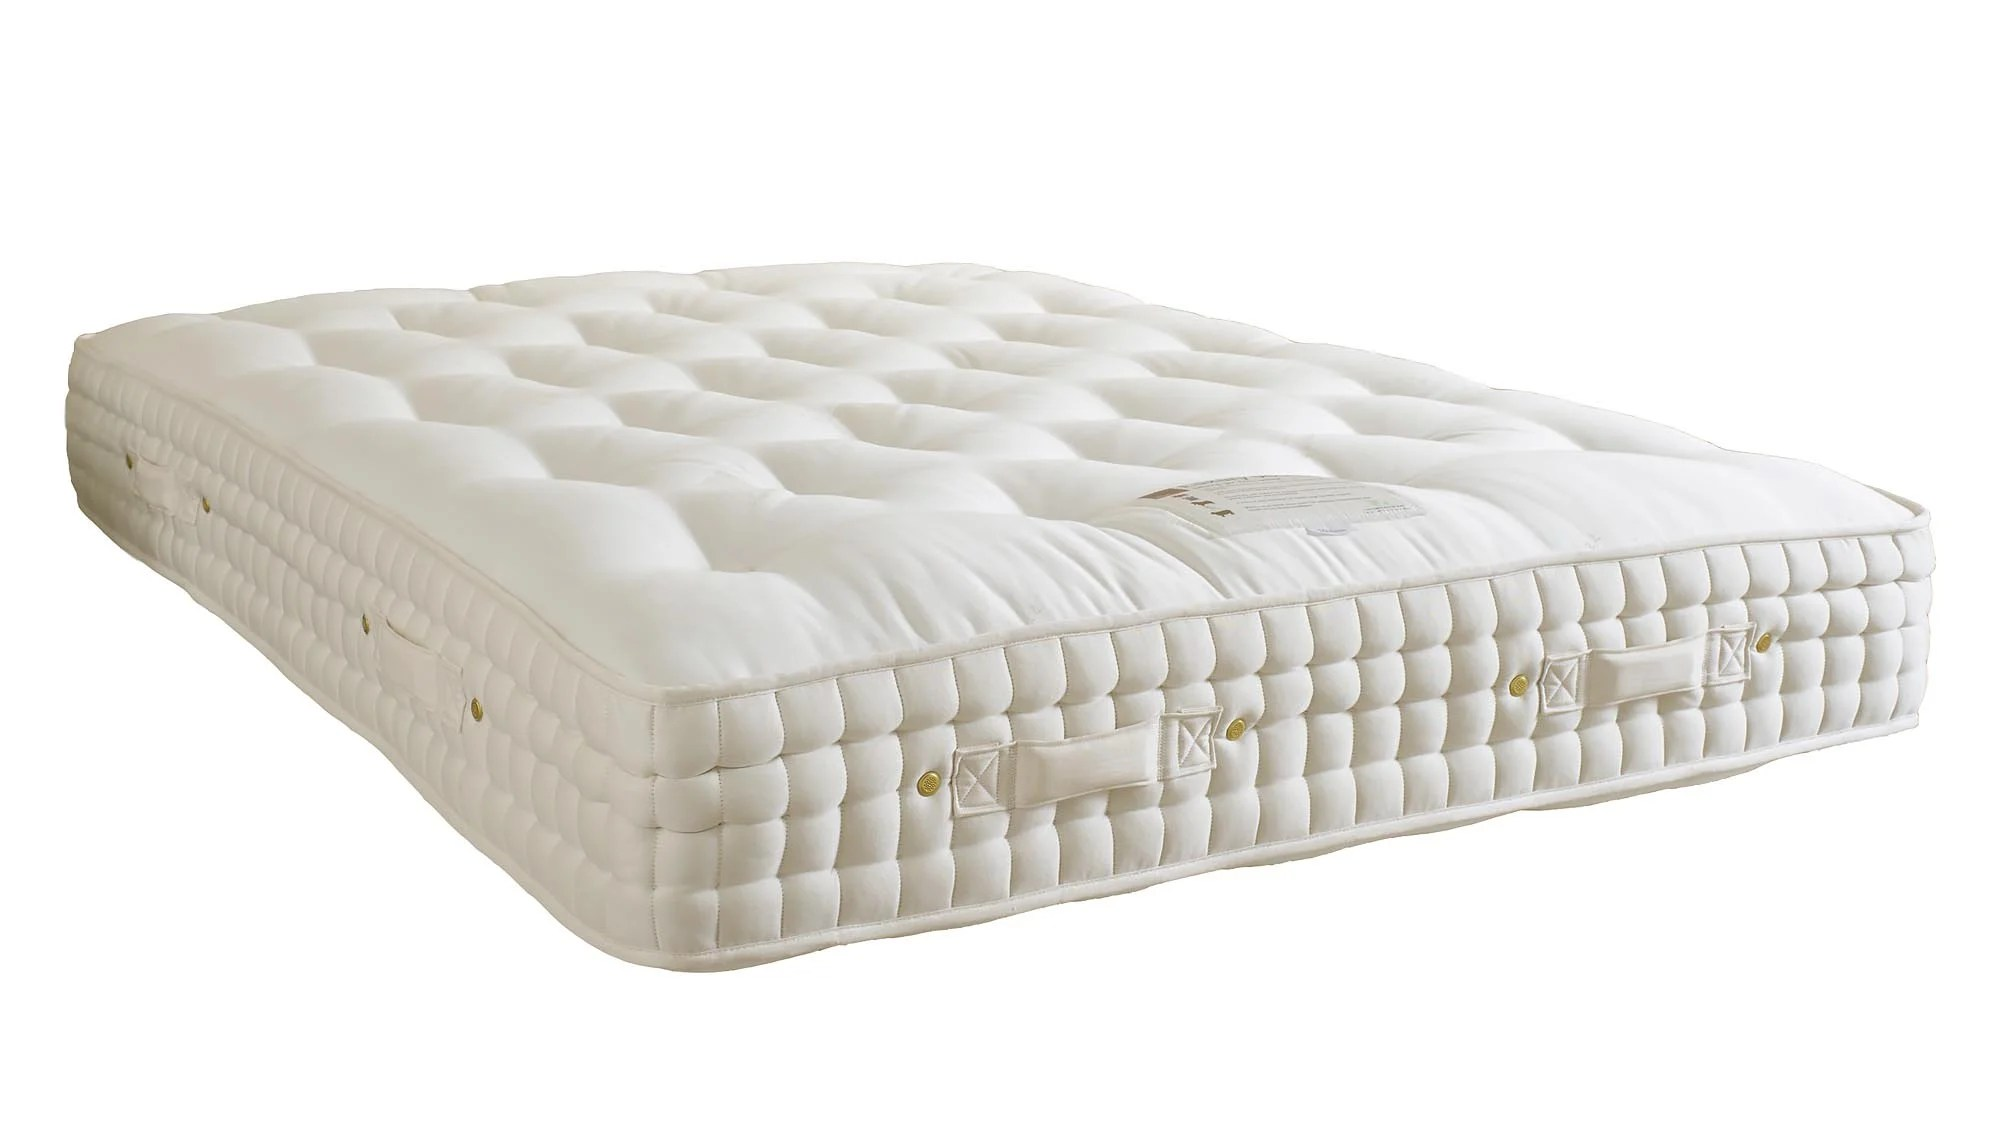 Firmest Mattresses On The Market Best Mattresses For A Bad Back Banish Back Pain With The Right